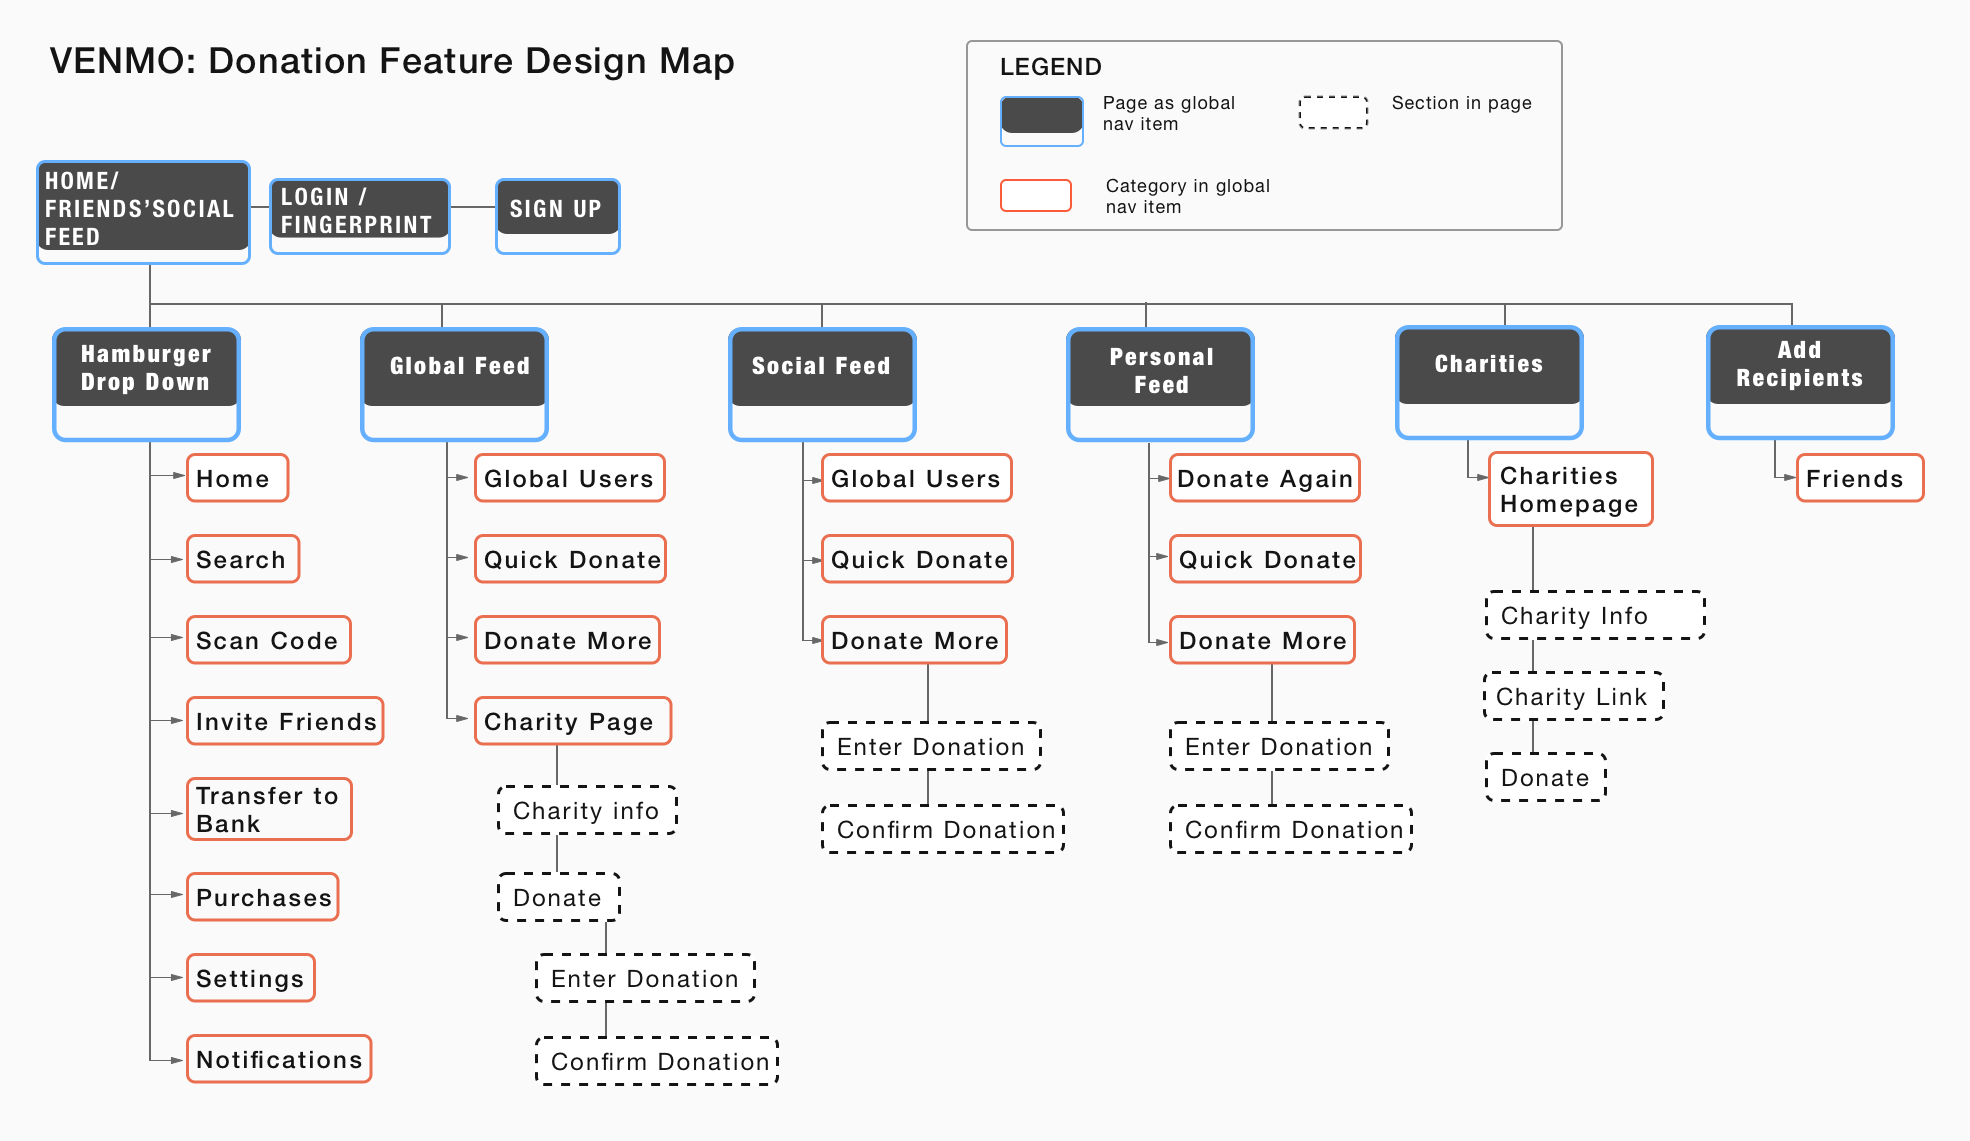 Venmo_Donation Feature Design_Map_scaled.png